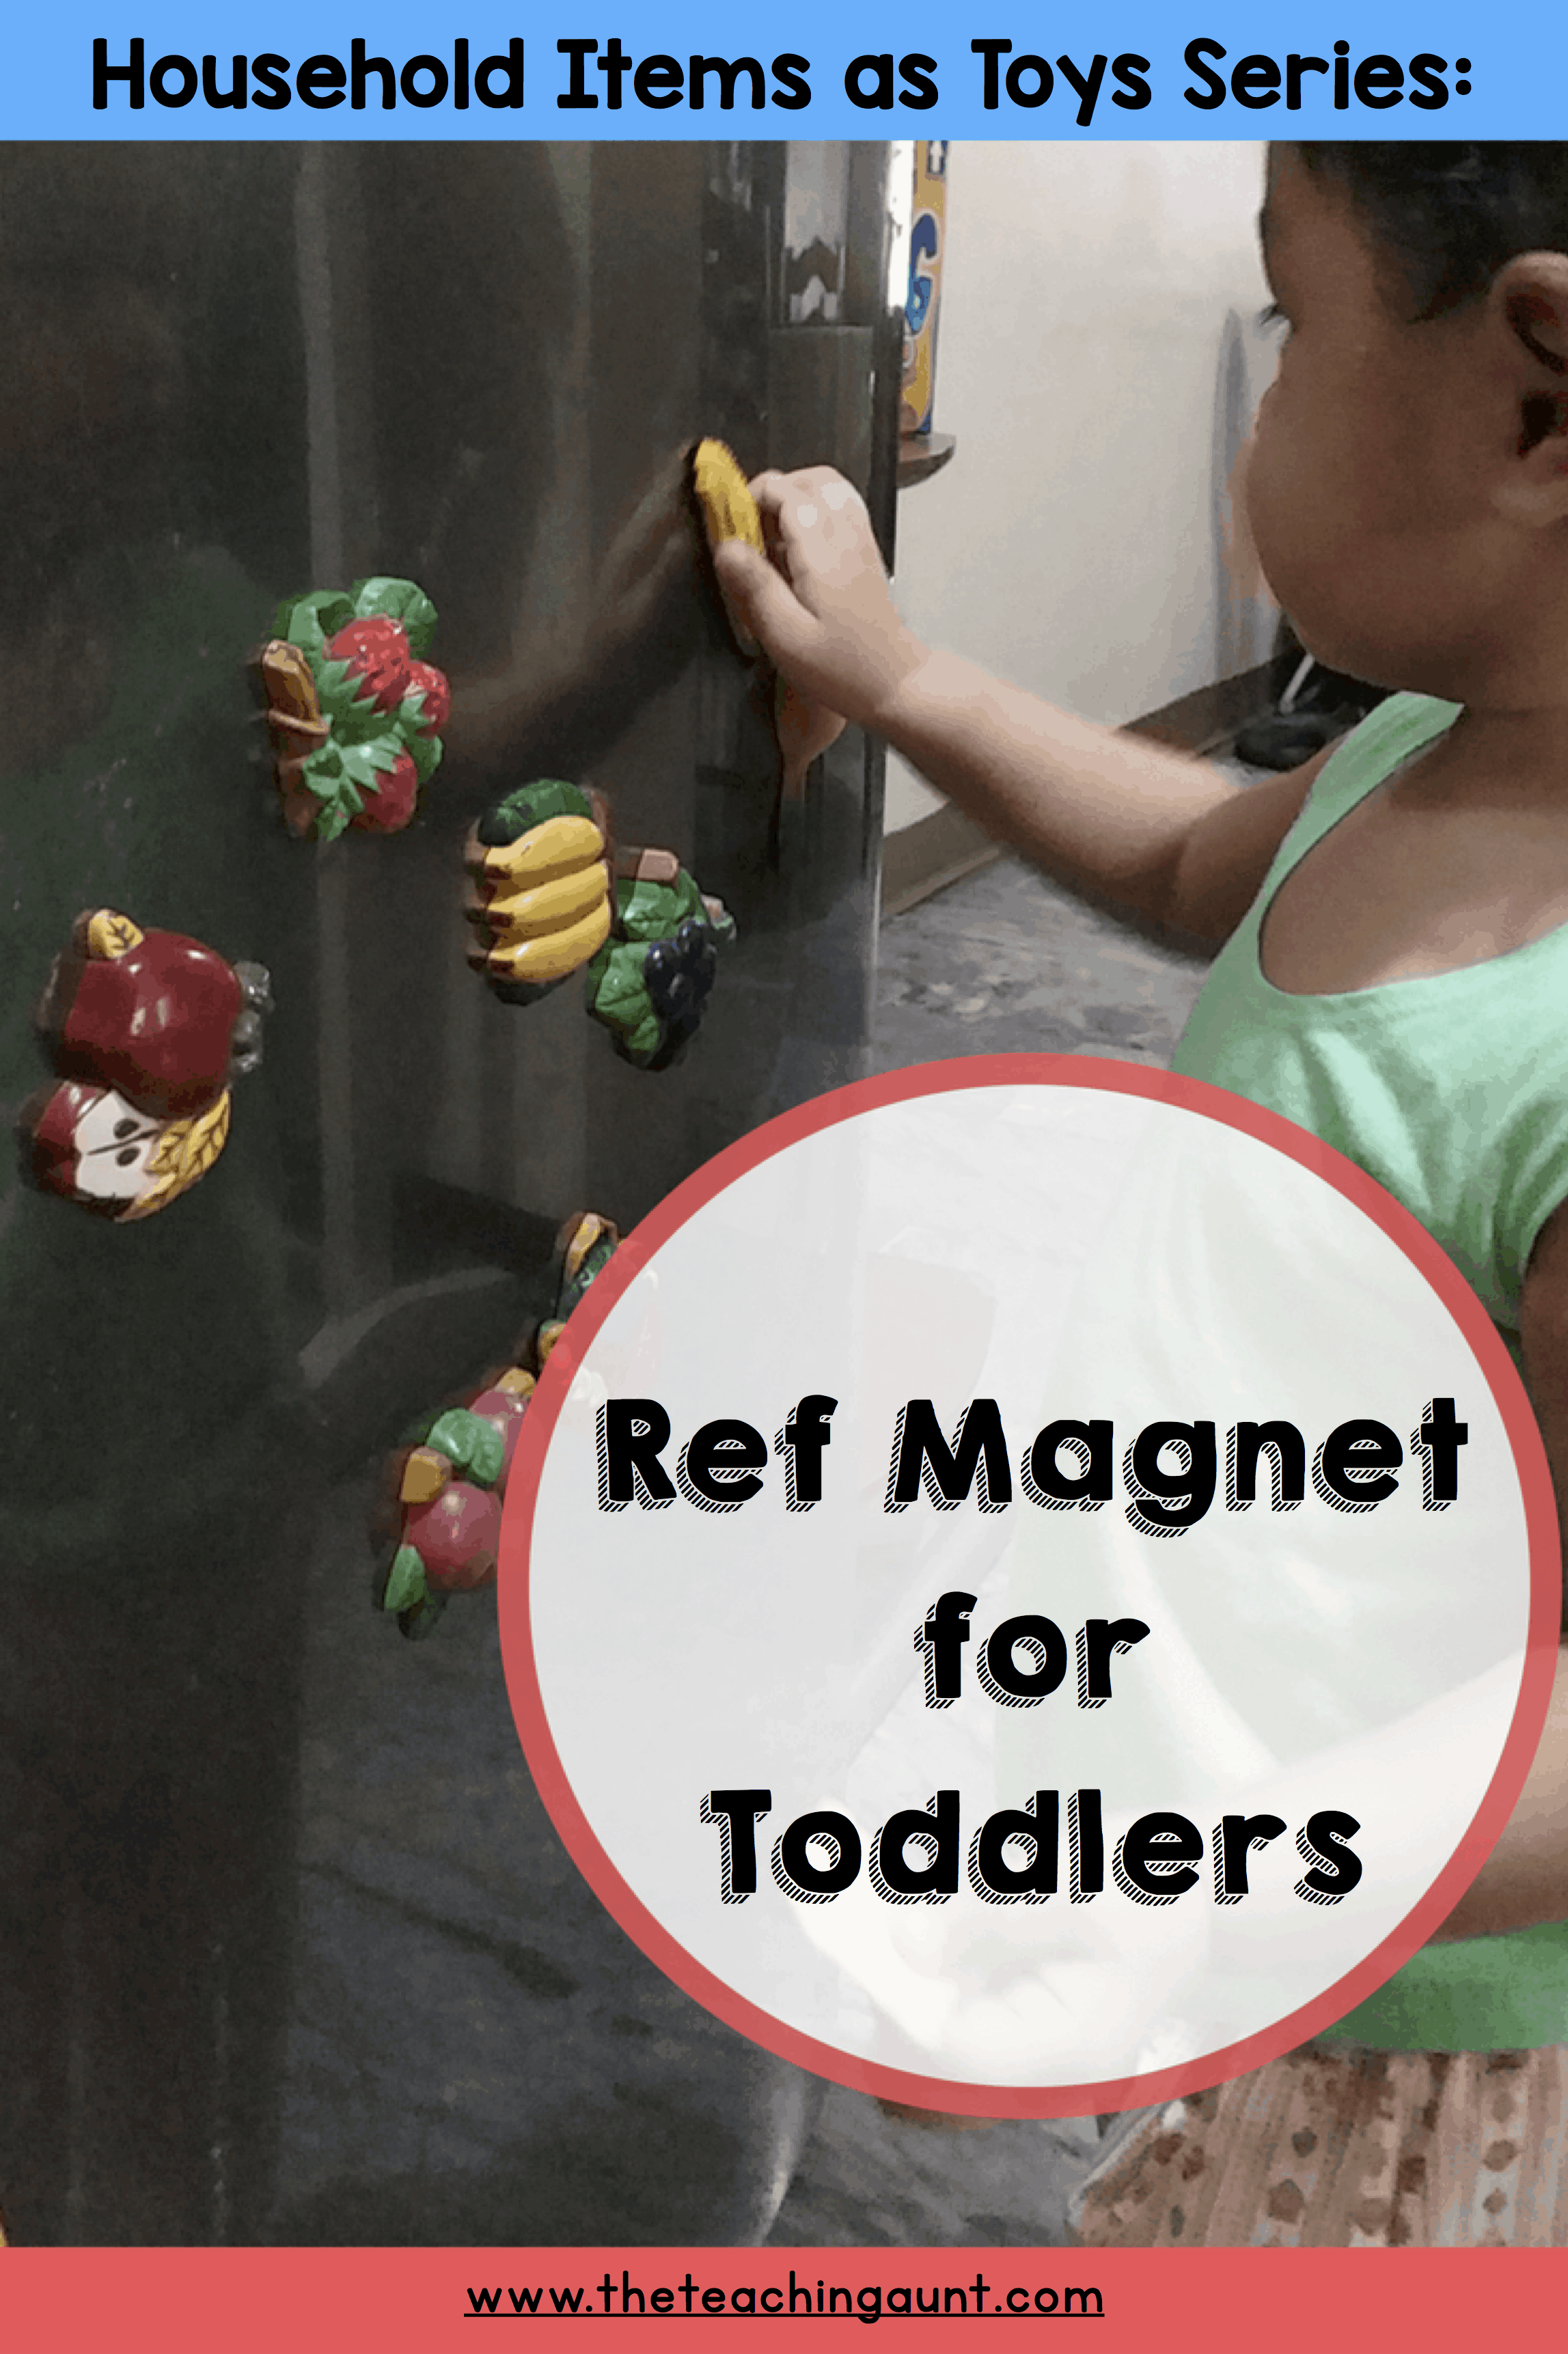 Ref Magnets for Toddler: Household Items as Toys Series